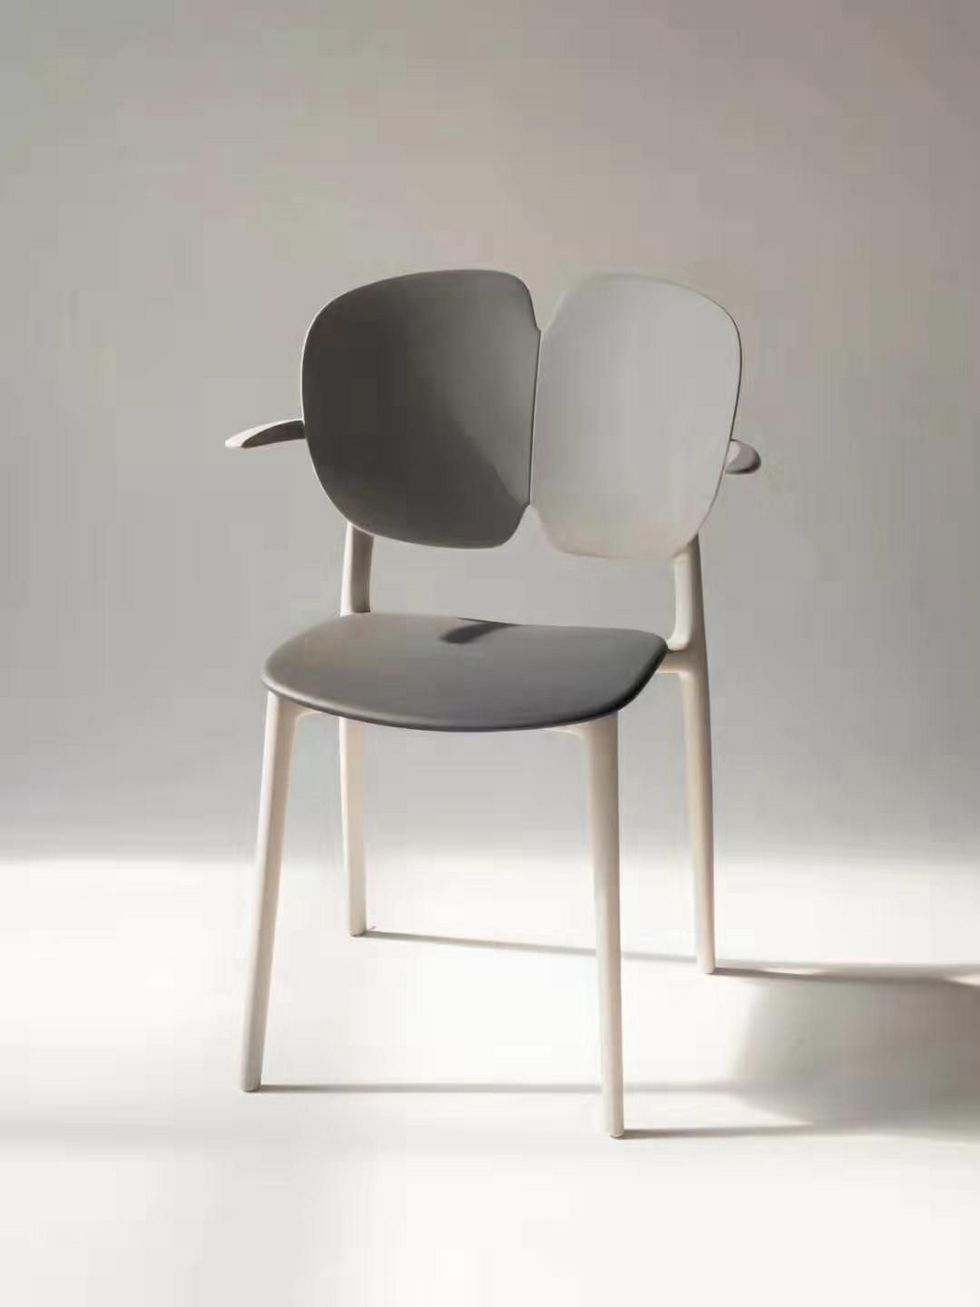 design plastic dining chair, office chair, cafe chair